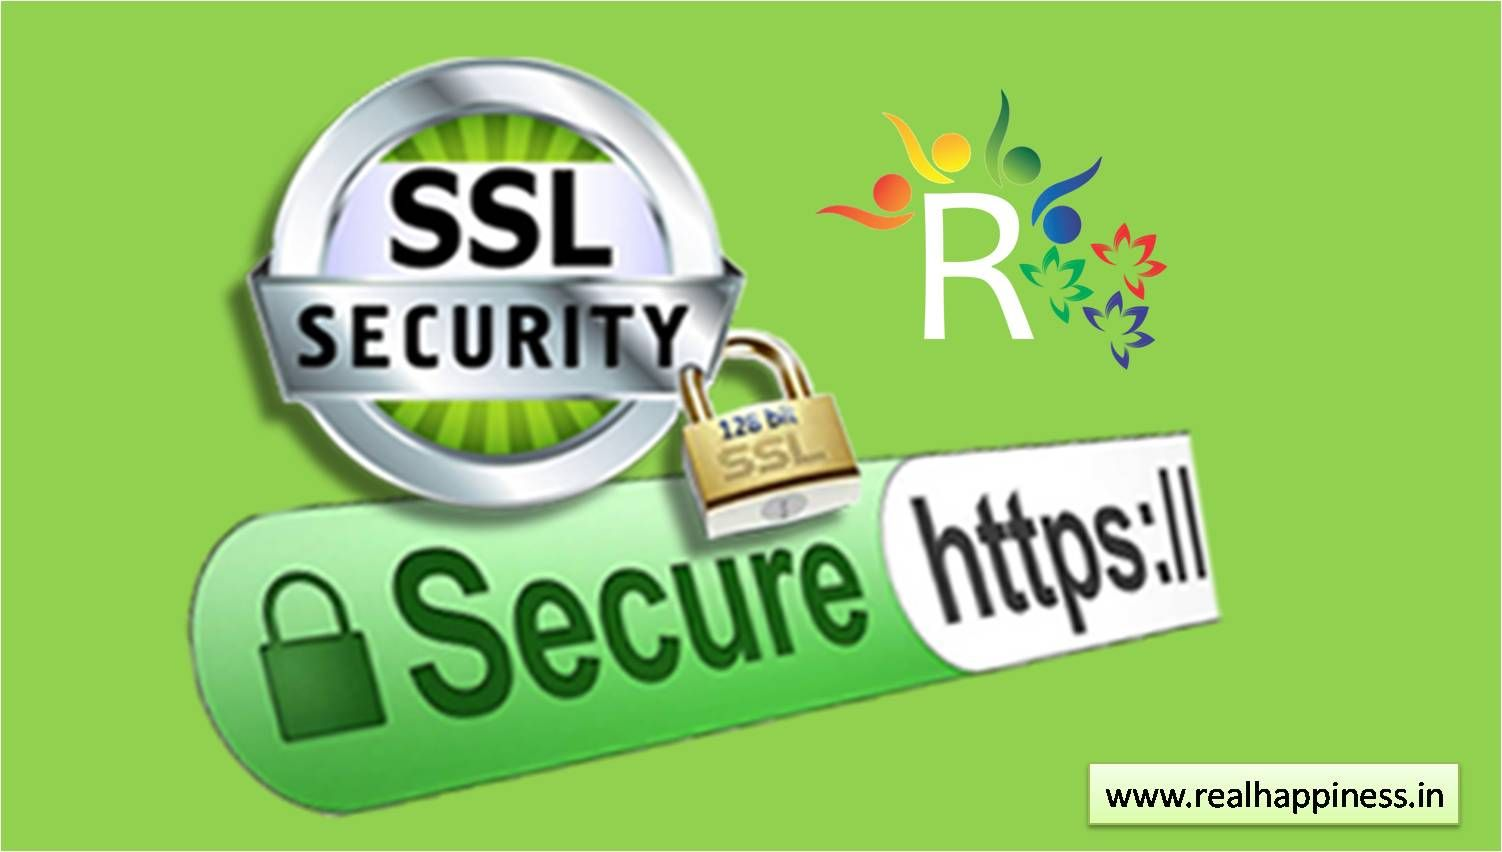 Ssl certificate provider in rishikesh uttarakhand get your website ssl certificate provider in rishikesh uttarakhand get your website highly secure with ssl certificate 1betcityfo Image collections